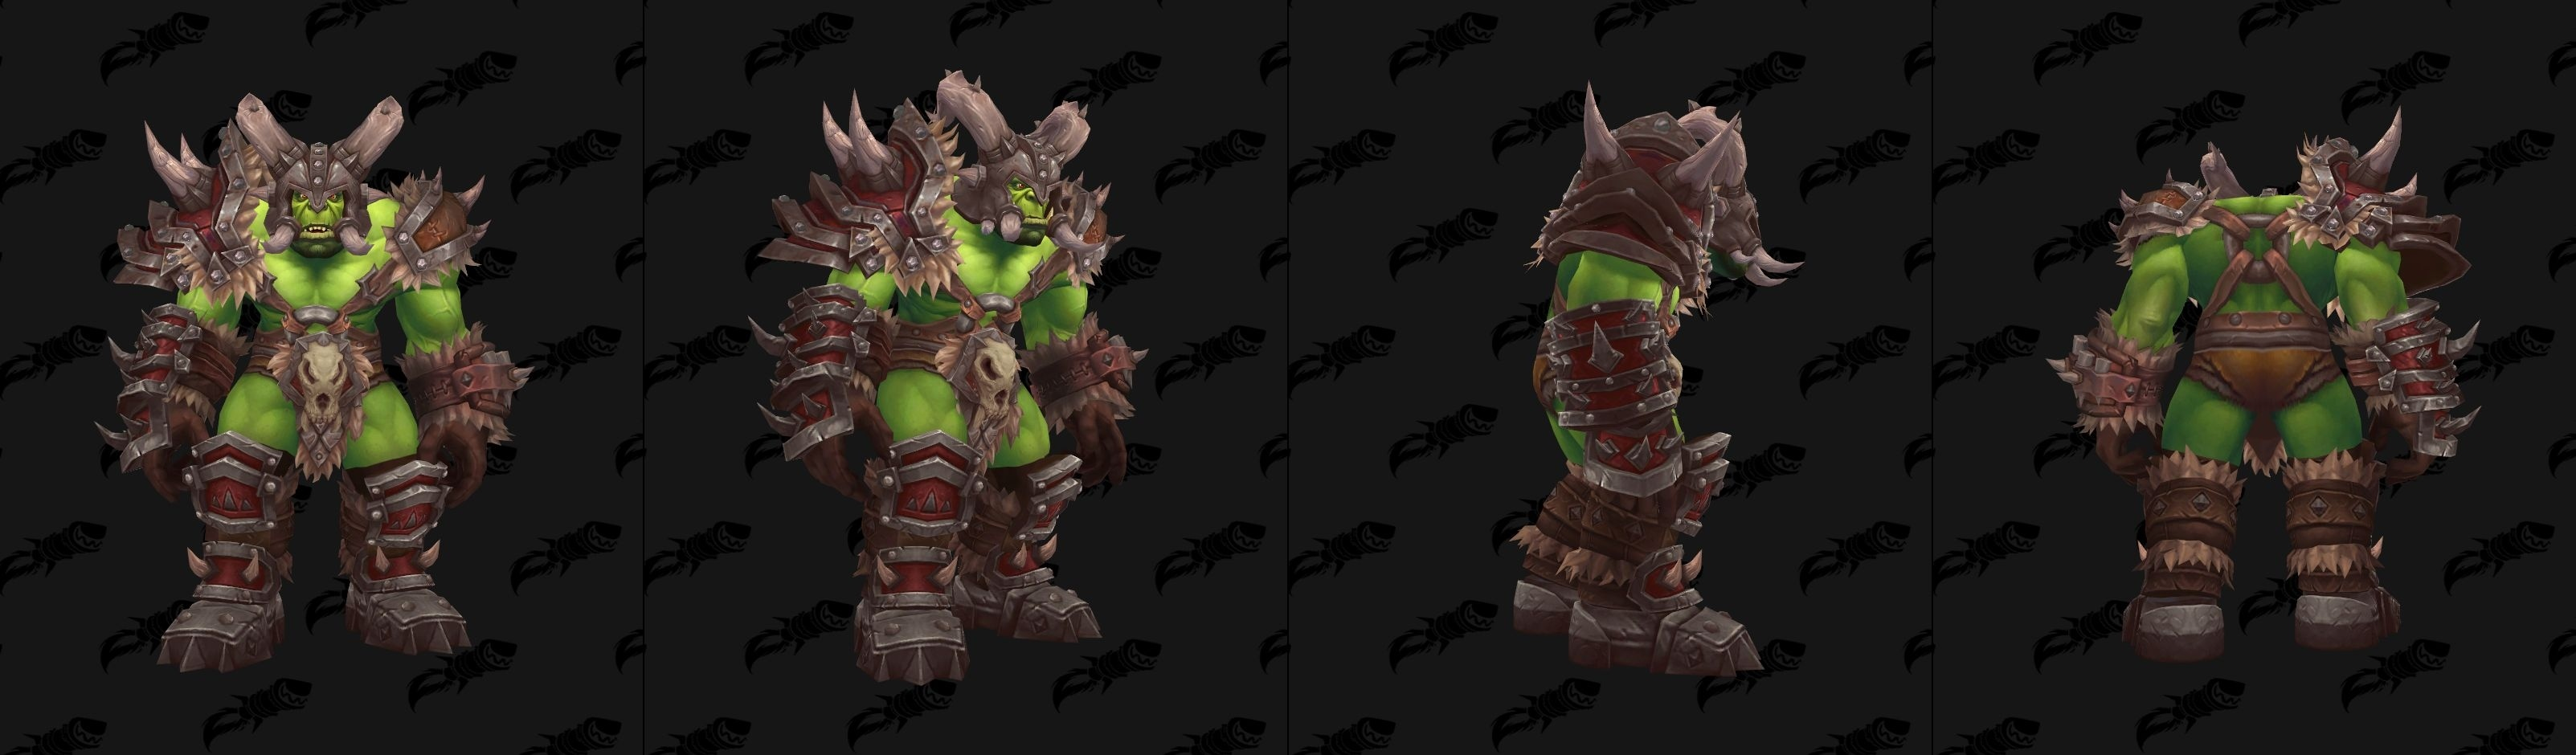 WoW Maghar Allied Race possible Heritage Armor